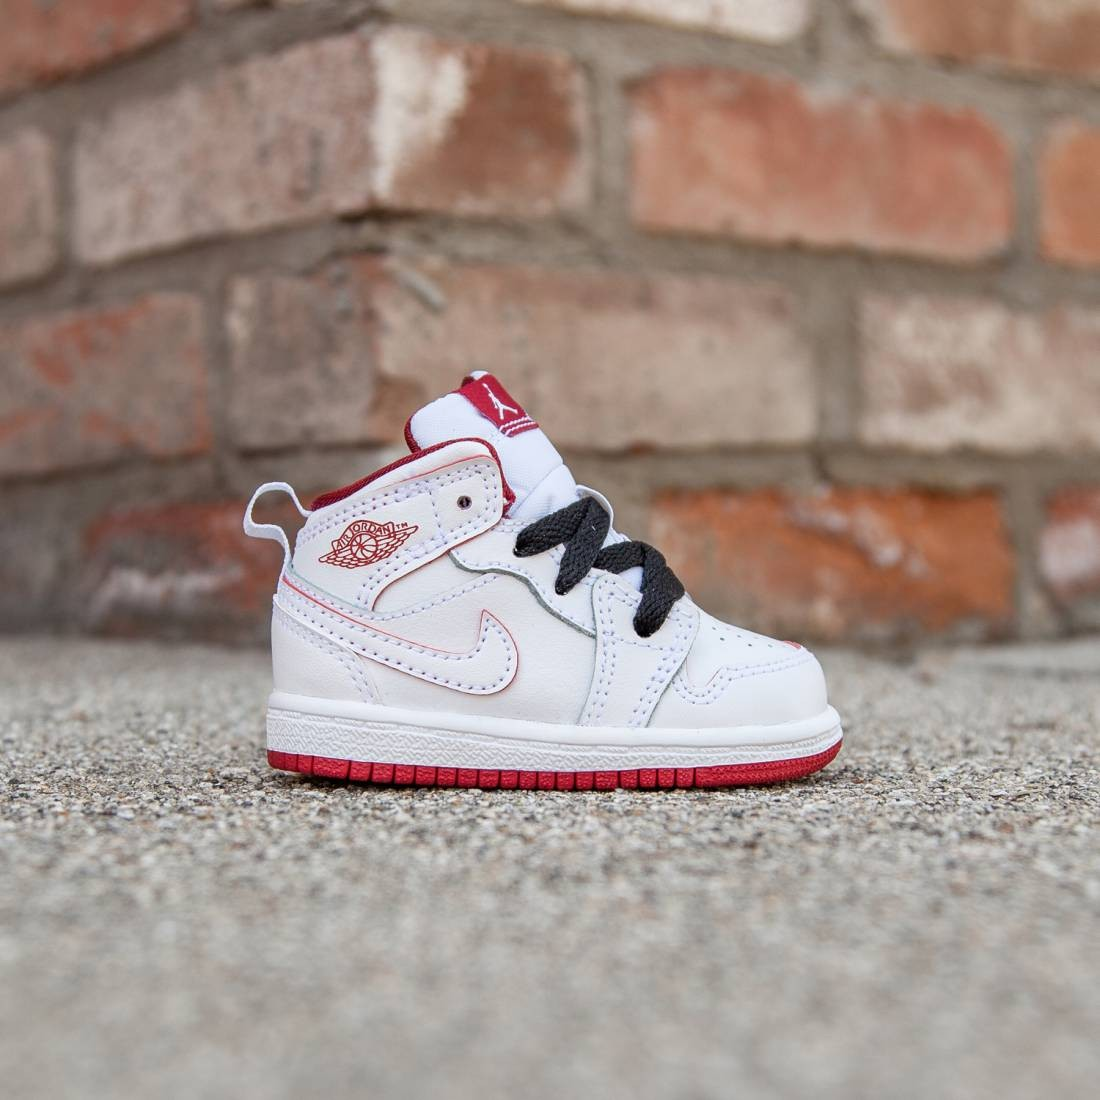 Air Jordan 1 Mid Toddlers (white / black / gym red)